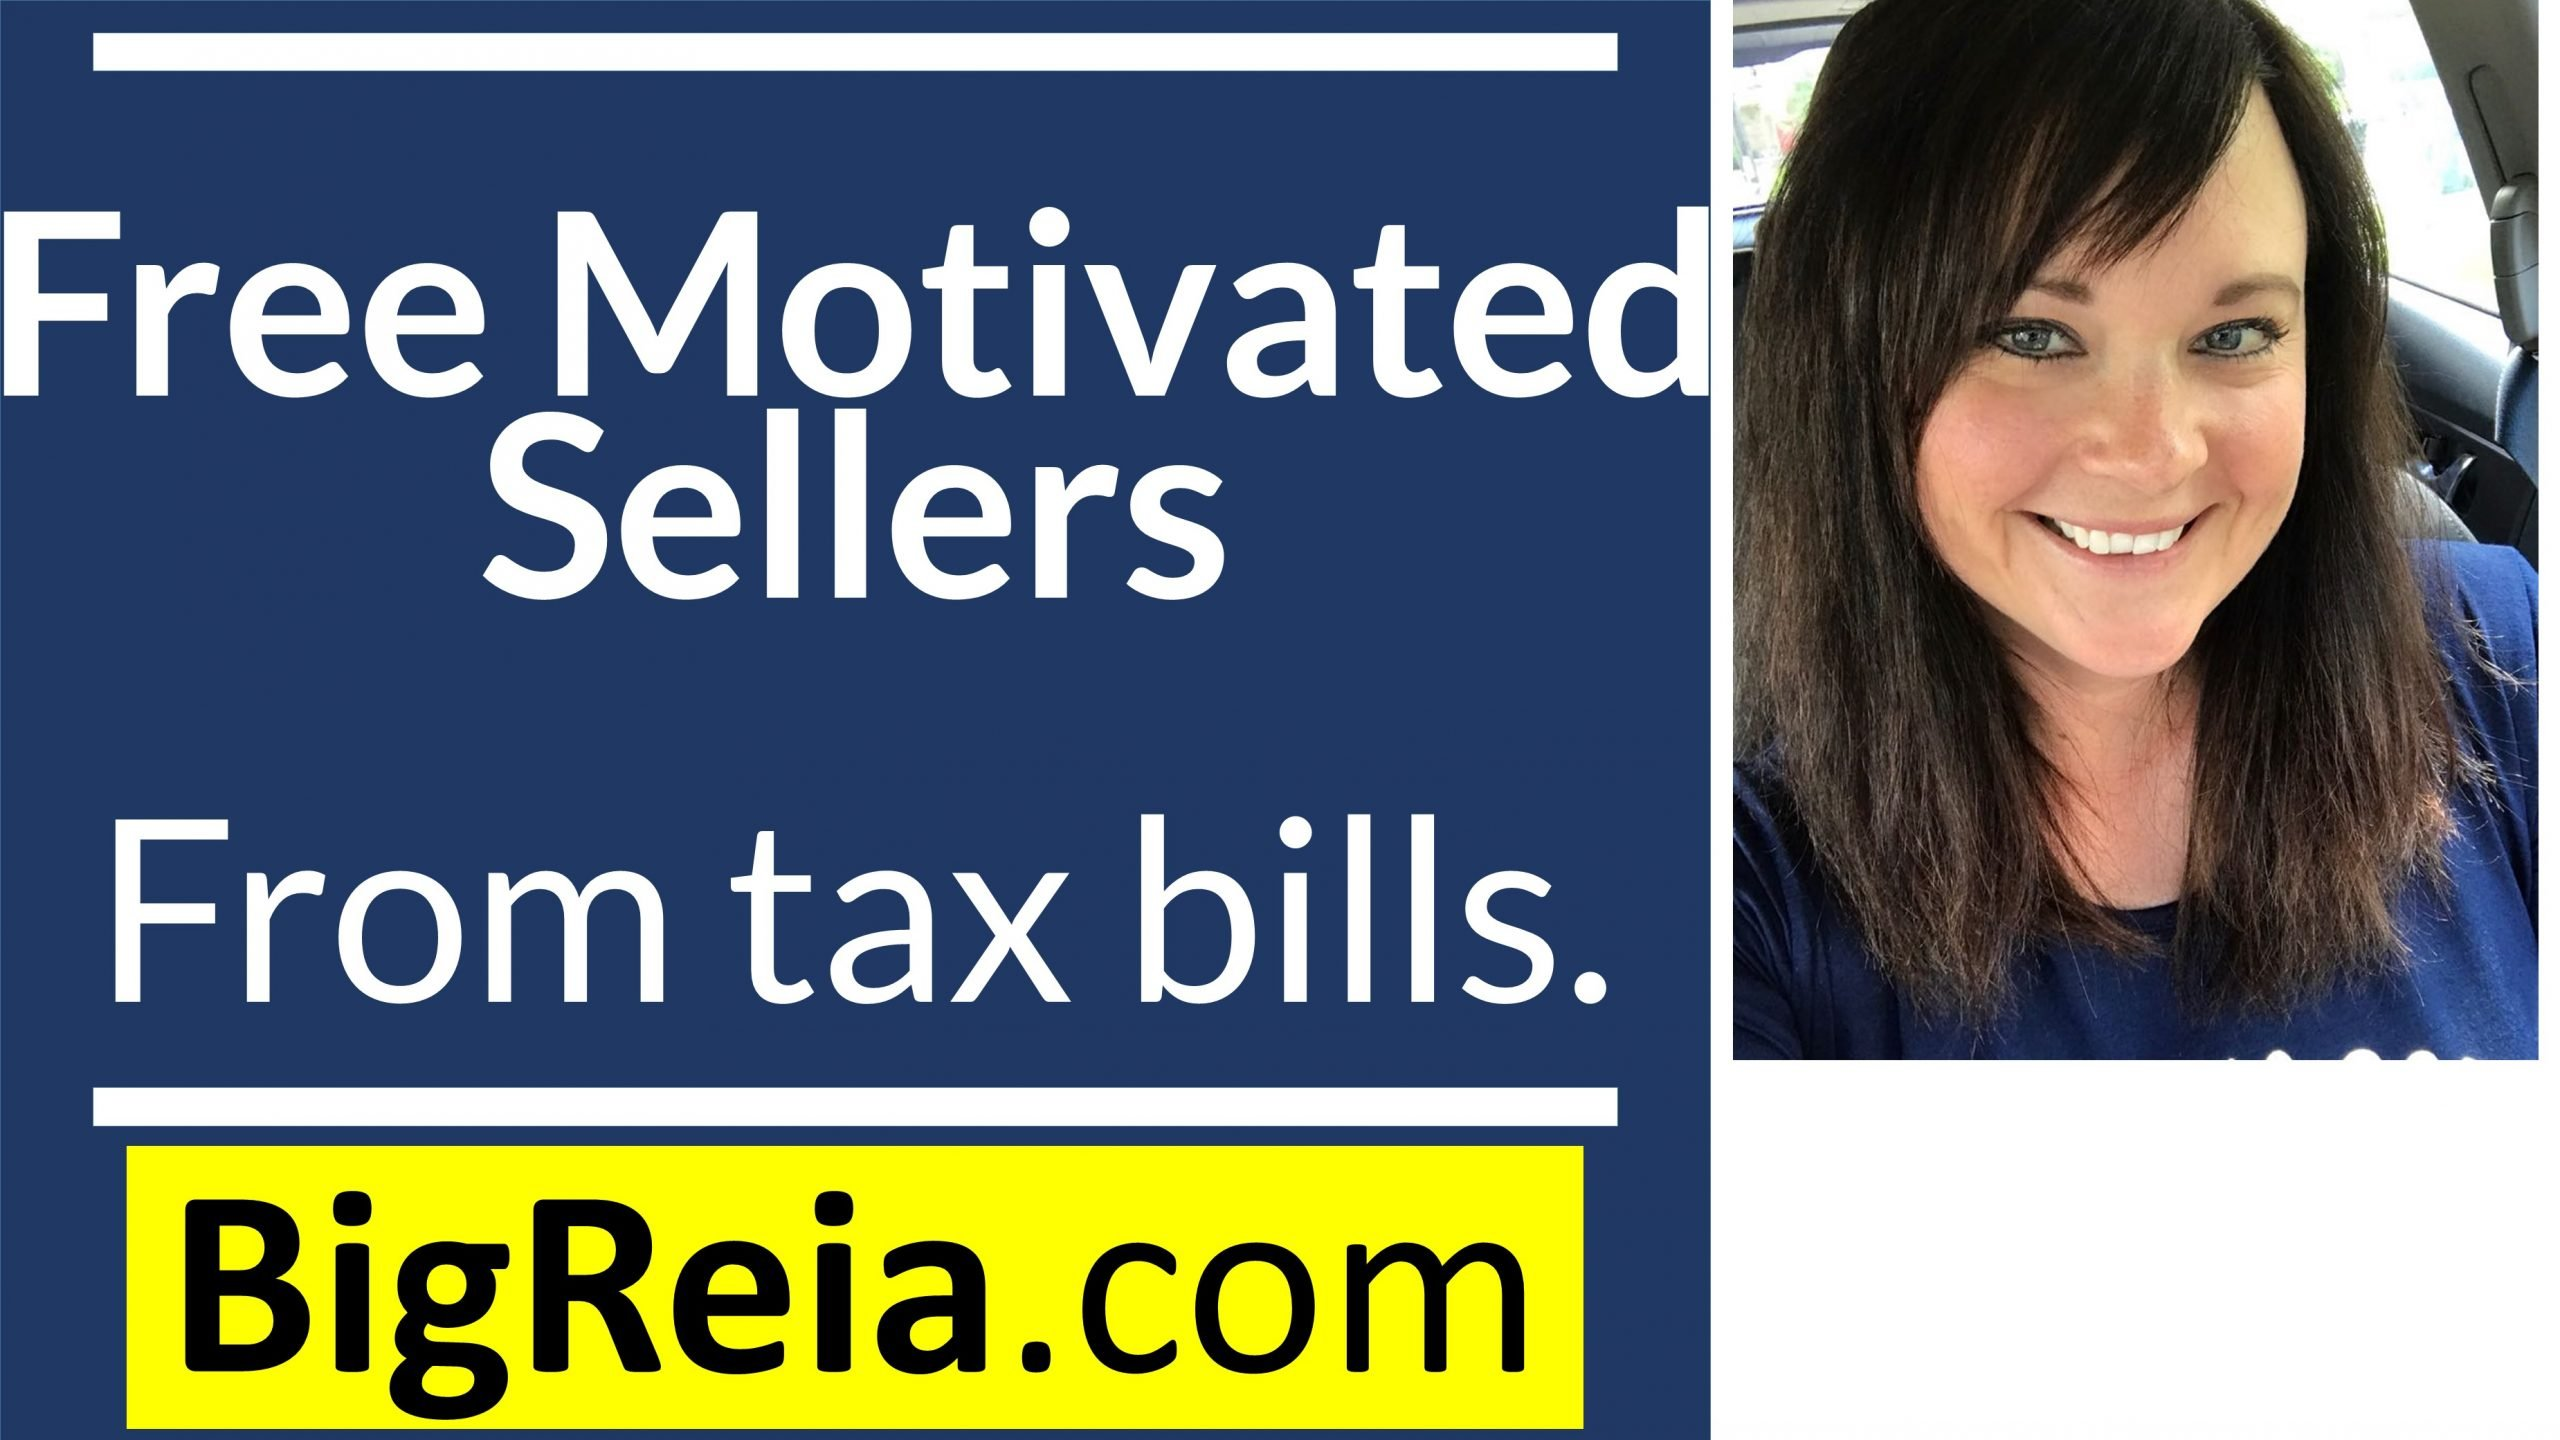 How to get free motivated seller leads from rising property tax bills, one deal made me over 23k.